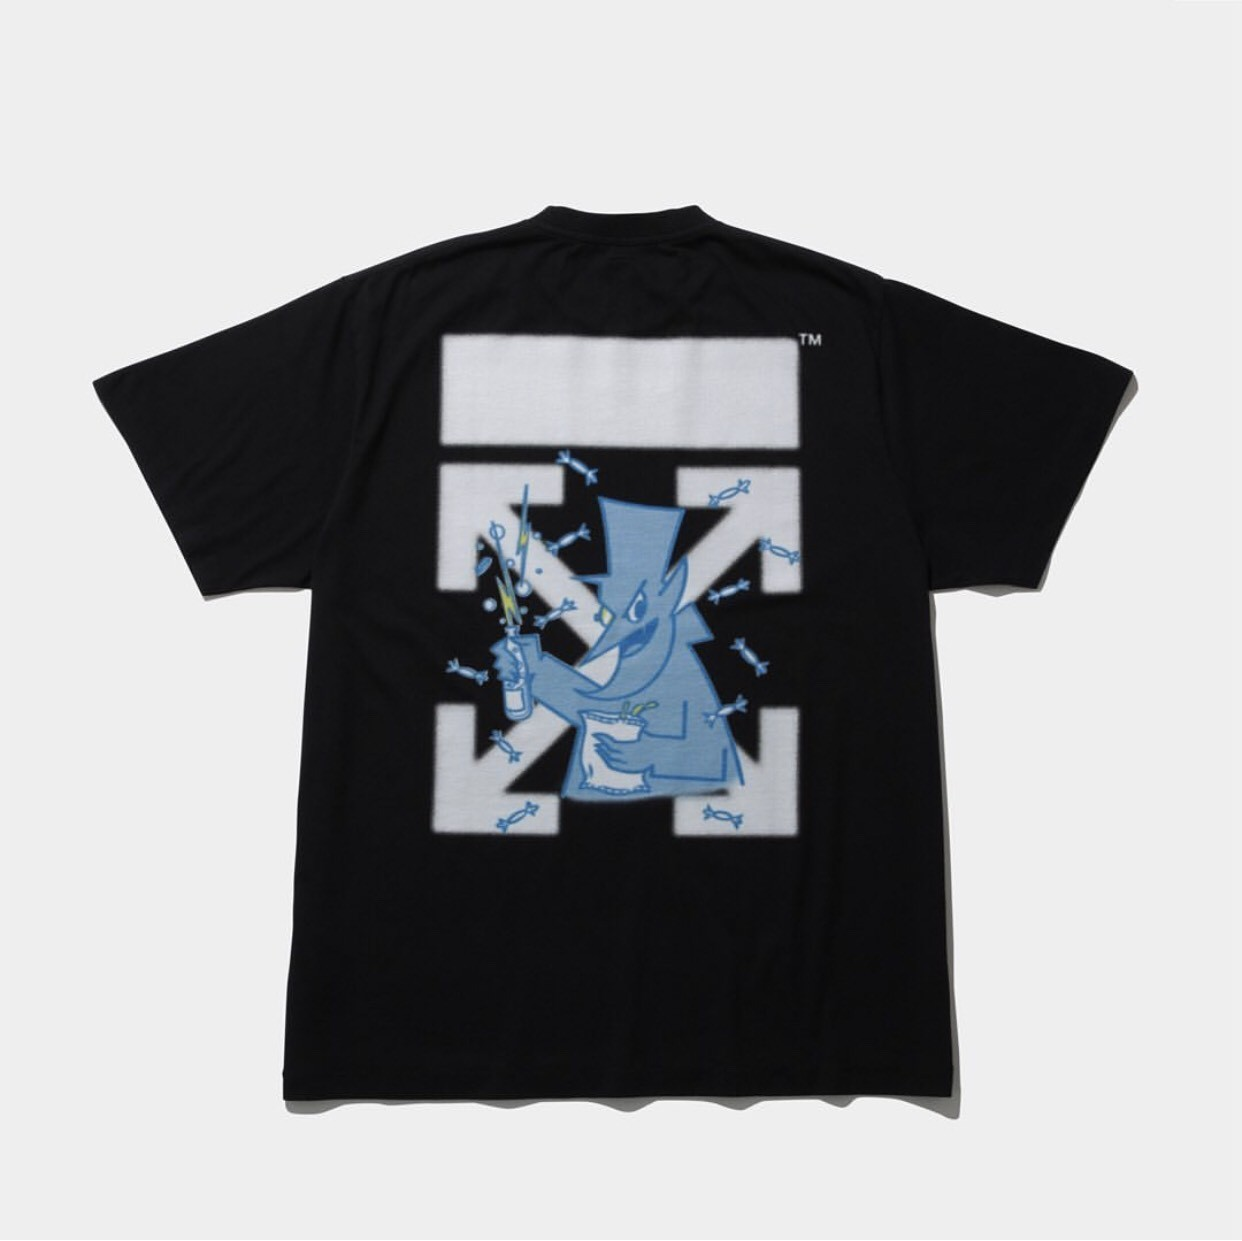 ▲Off-White X Fragment Design「CEREAL」T-Shirt系列。(圖/翻攝自IG@theconveni)